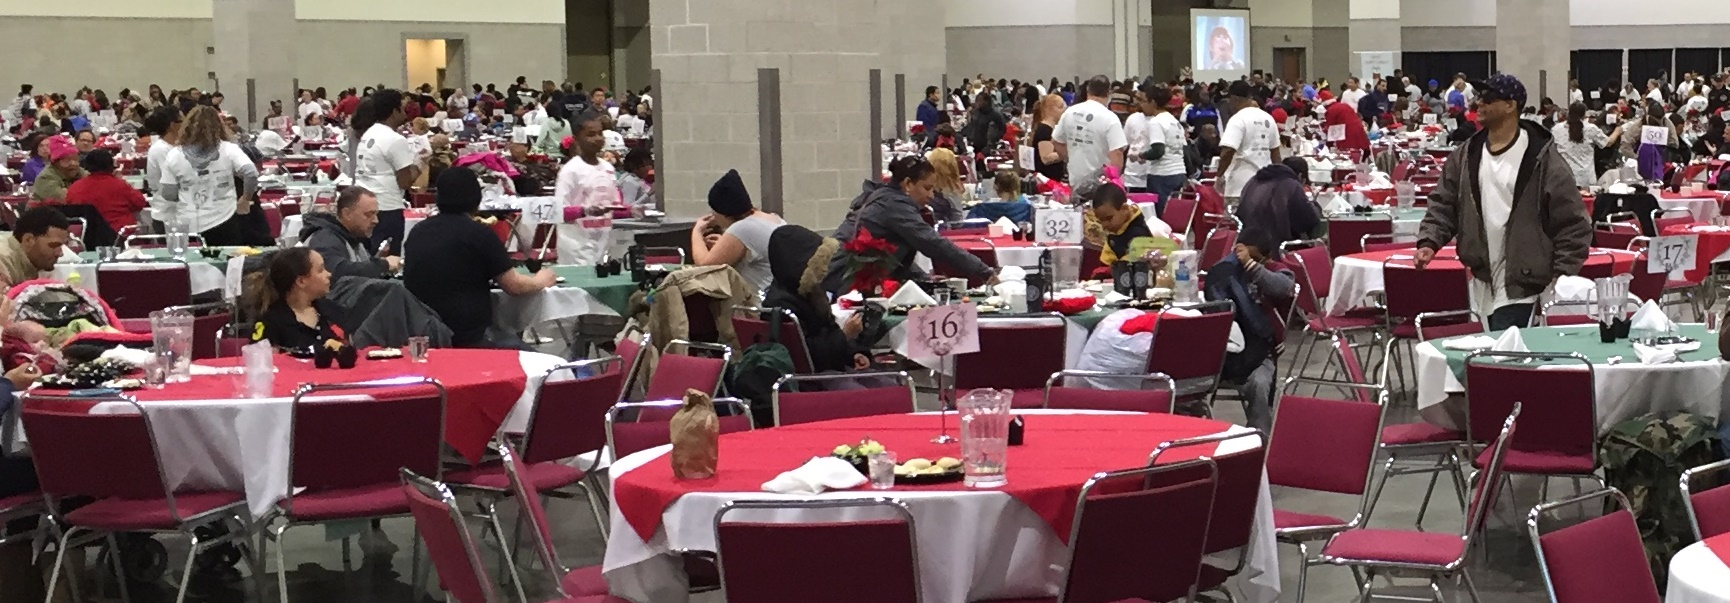 Feed 1000 provided warm meals, clothing and health services to 2,000 individuals in need